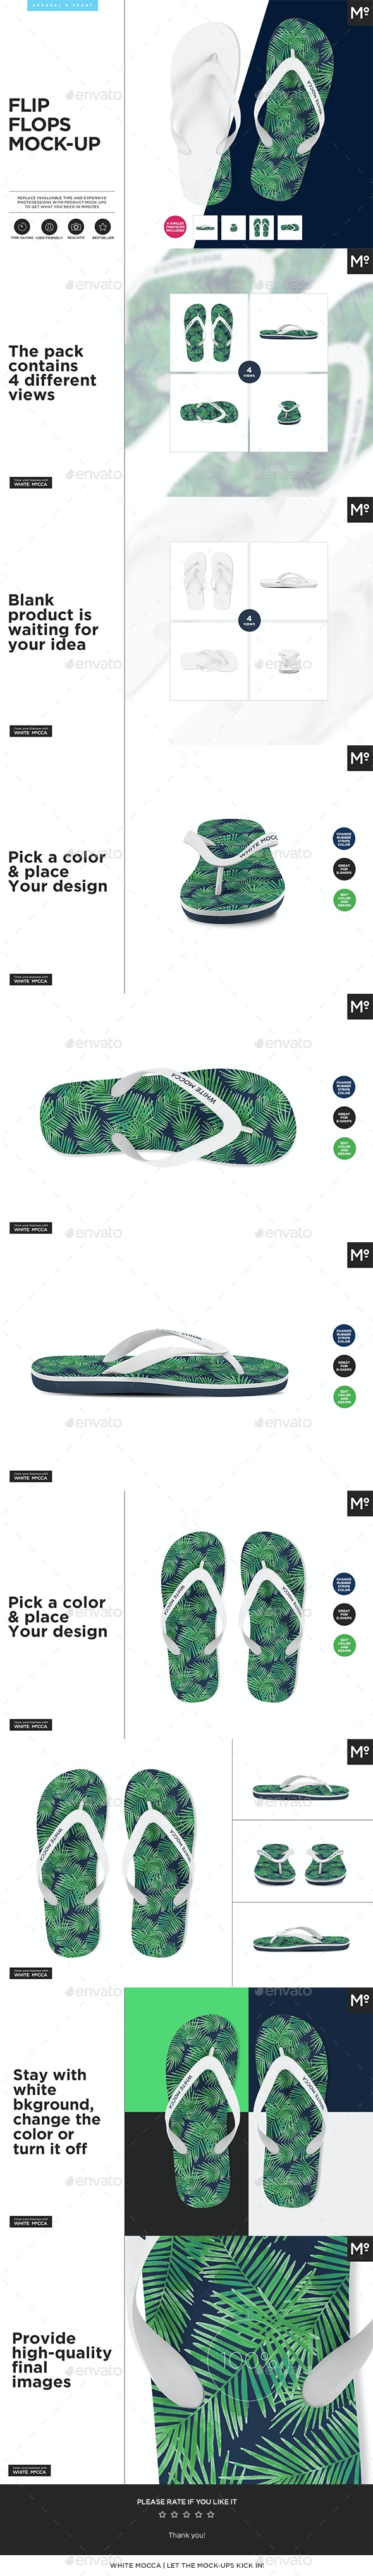 Flip Flops Mock-up - Miscellaneous Apparel